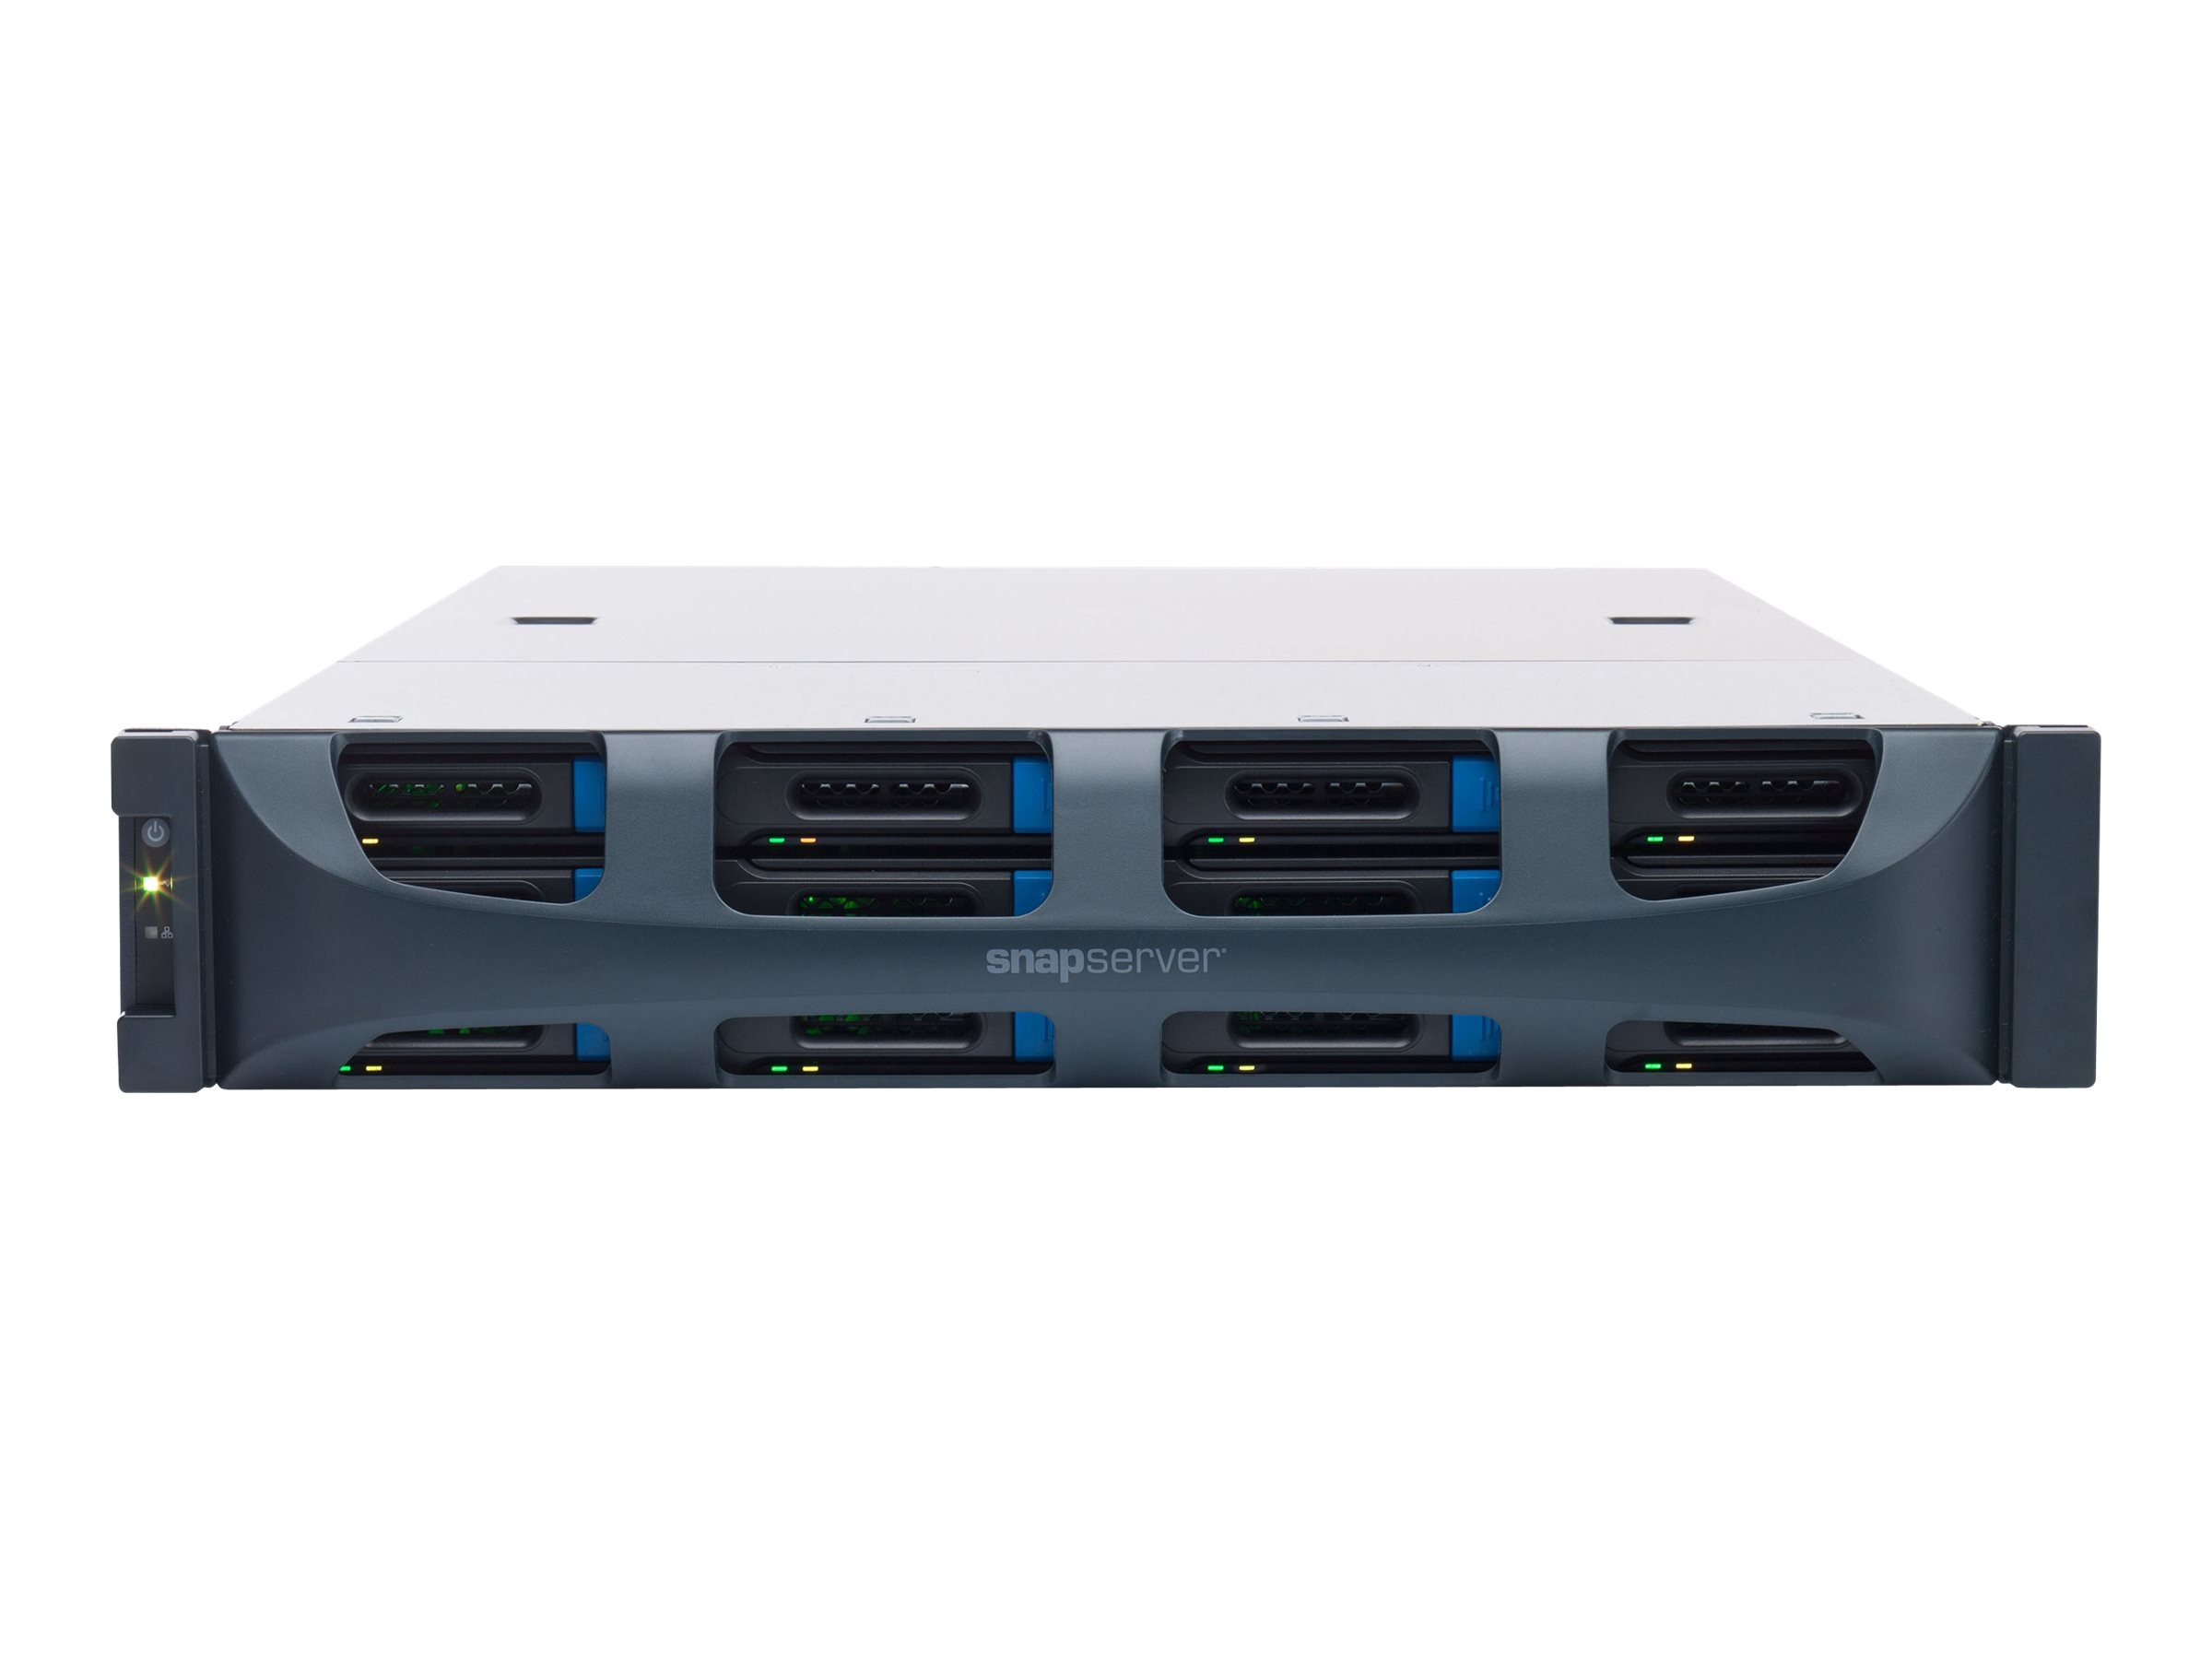 Overland SnapServer XSR 120 NAS 4TB Bundle (4 x 1TB Enterprise SATA Drives), OT-NAS200216, 17934176, Network Attached Storage